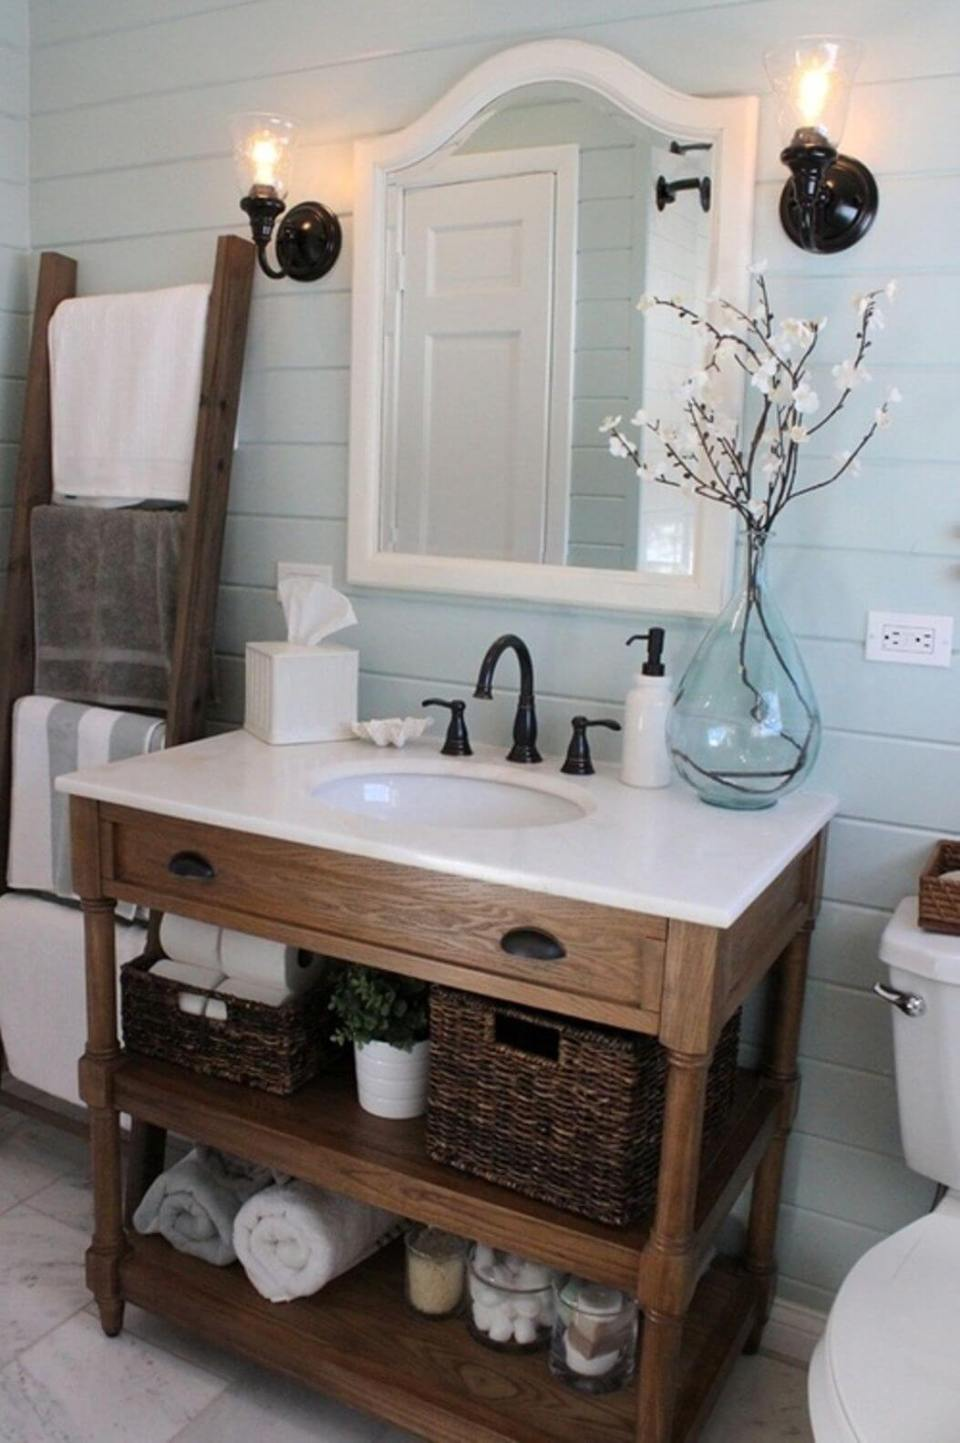 Cottage Bath with Painted Shiplap and Vintage Hardware